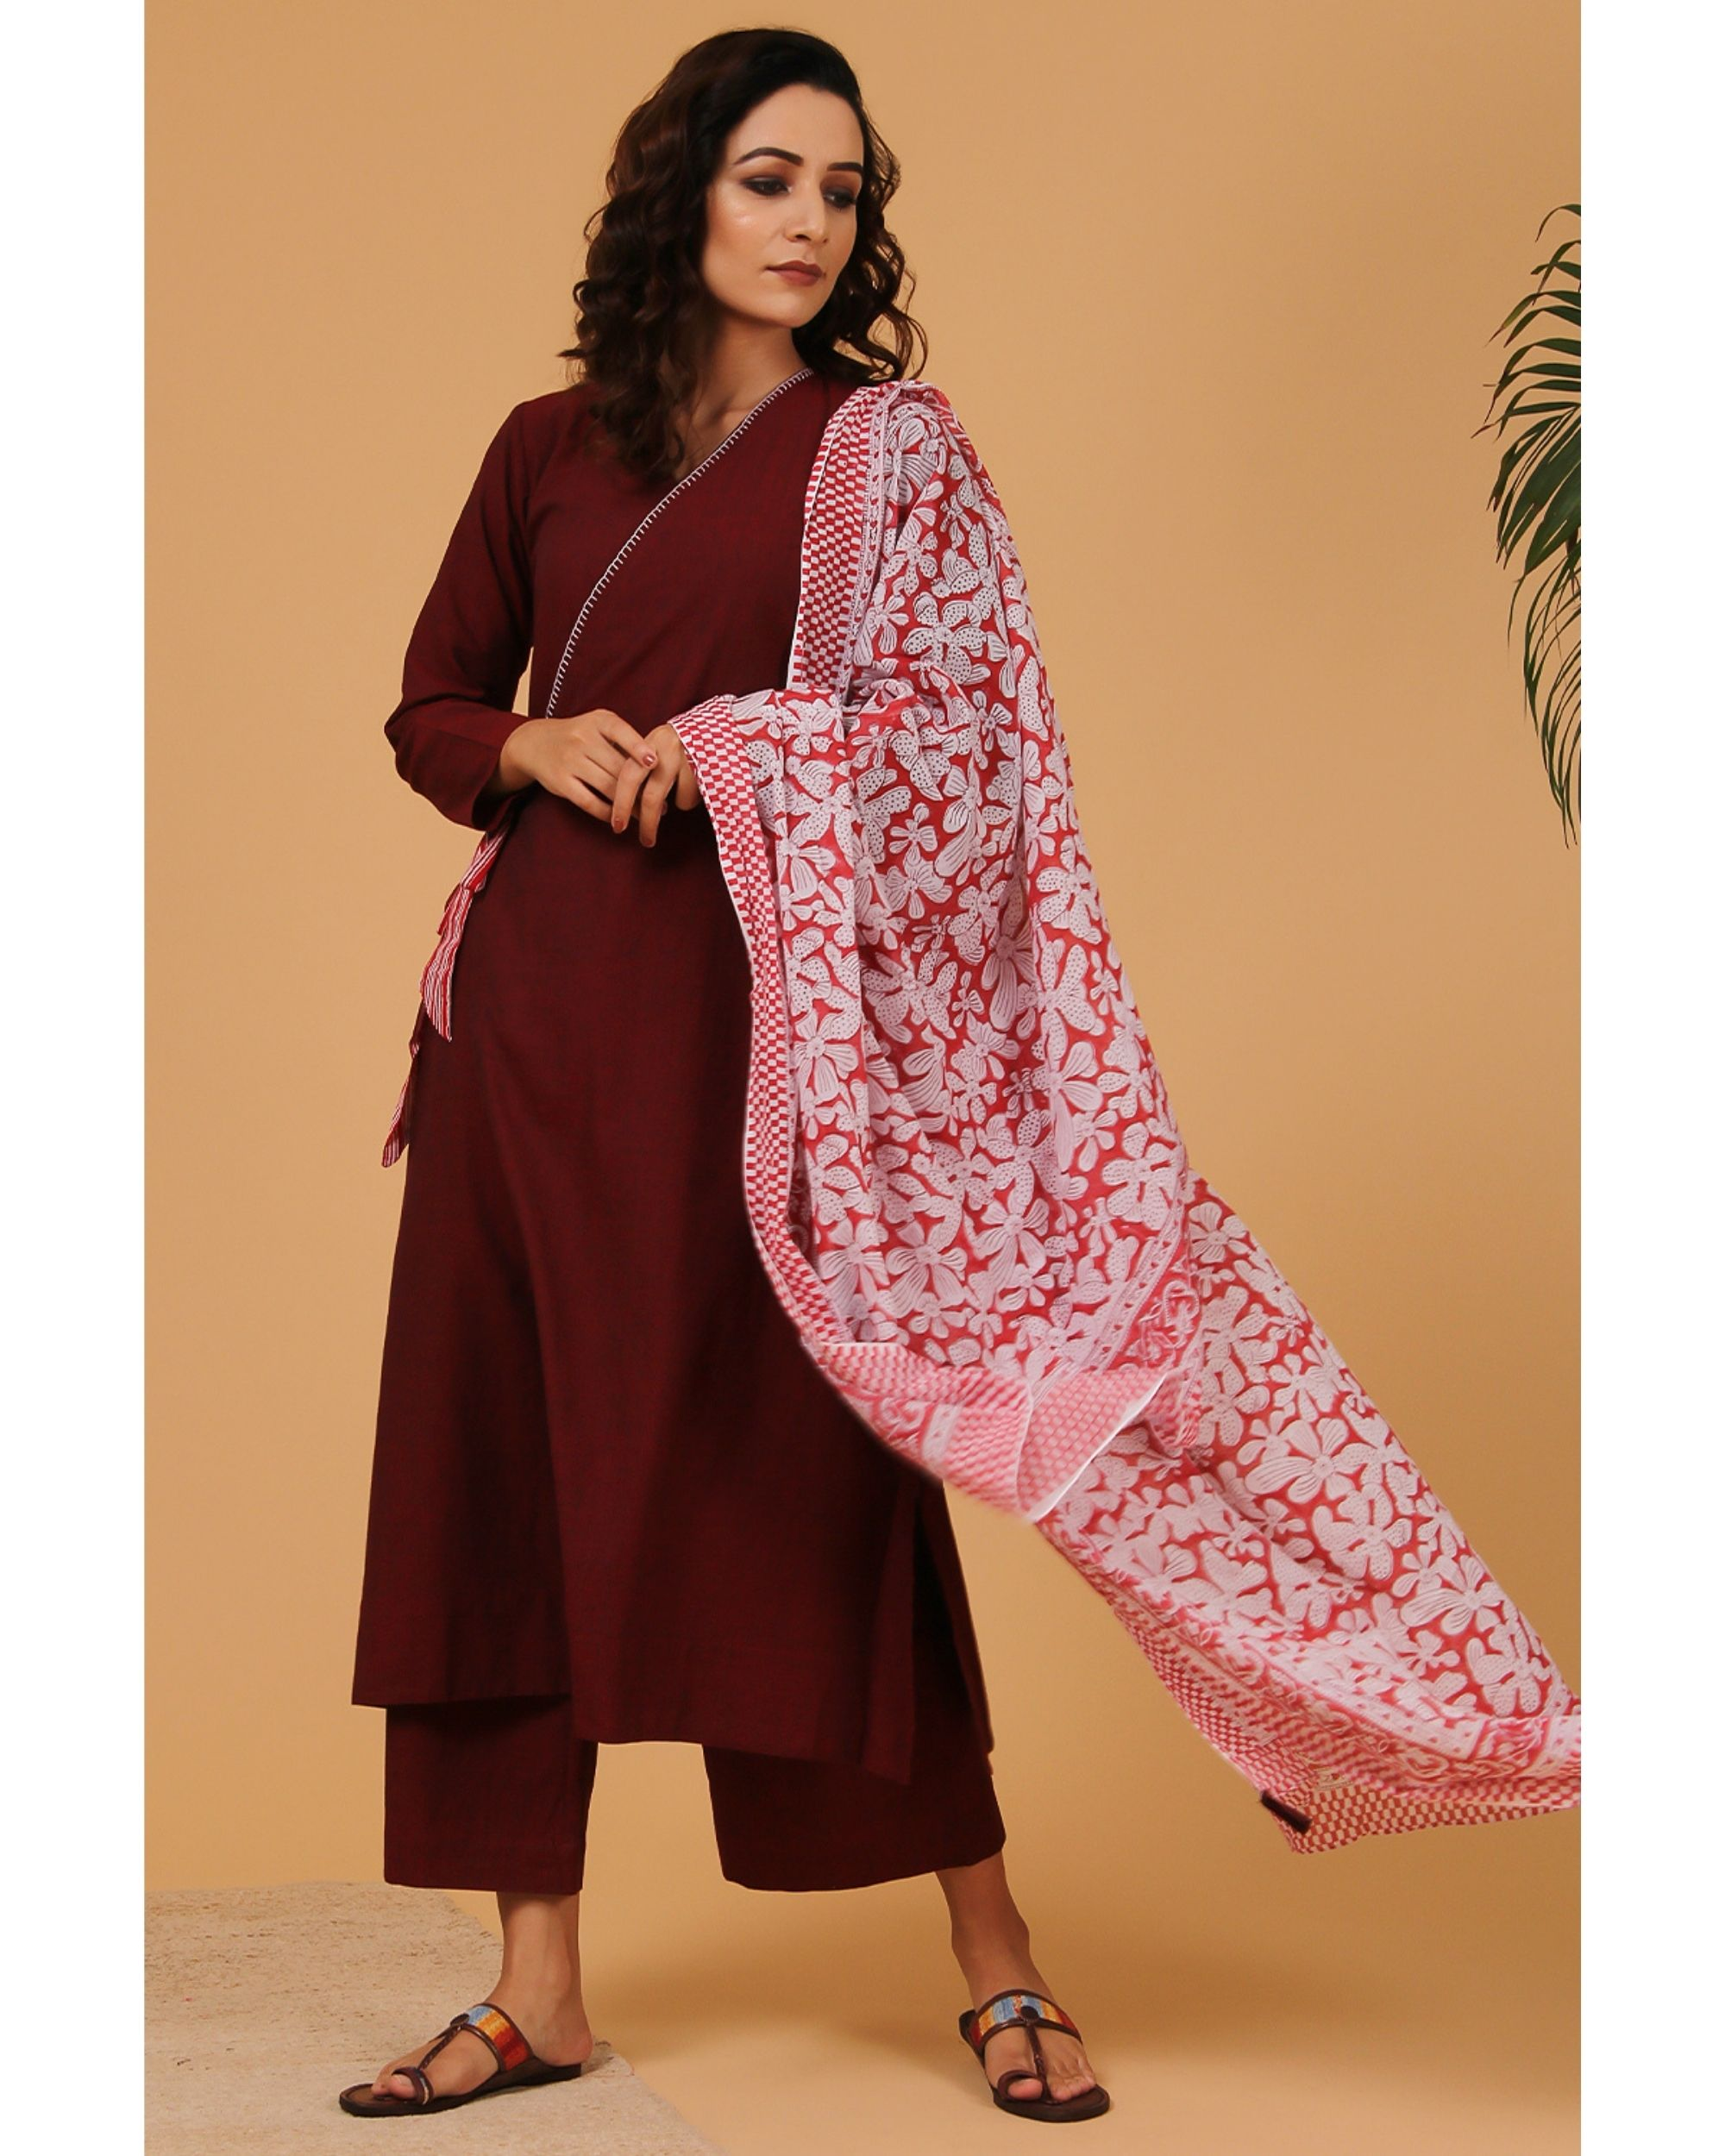 Maroon and white floral hand block printed dupatta